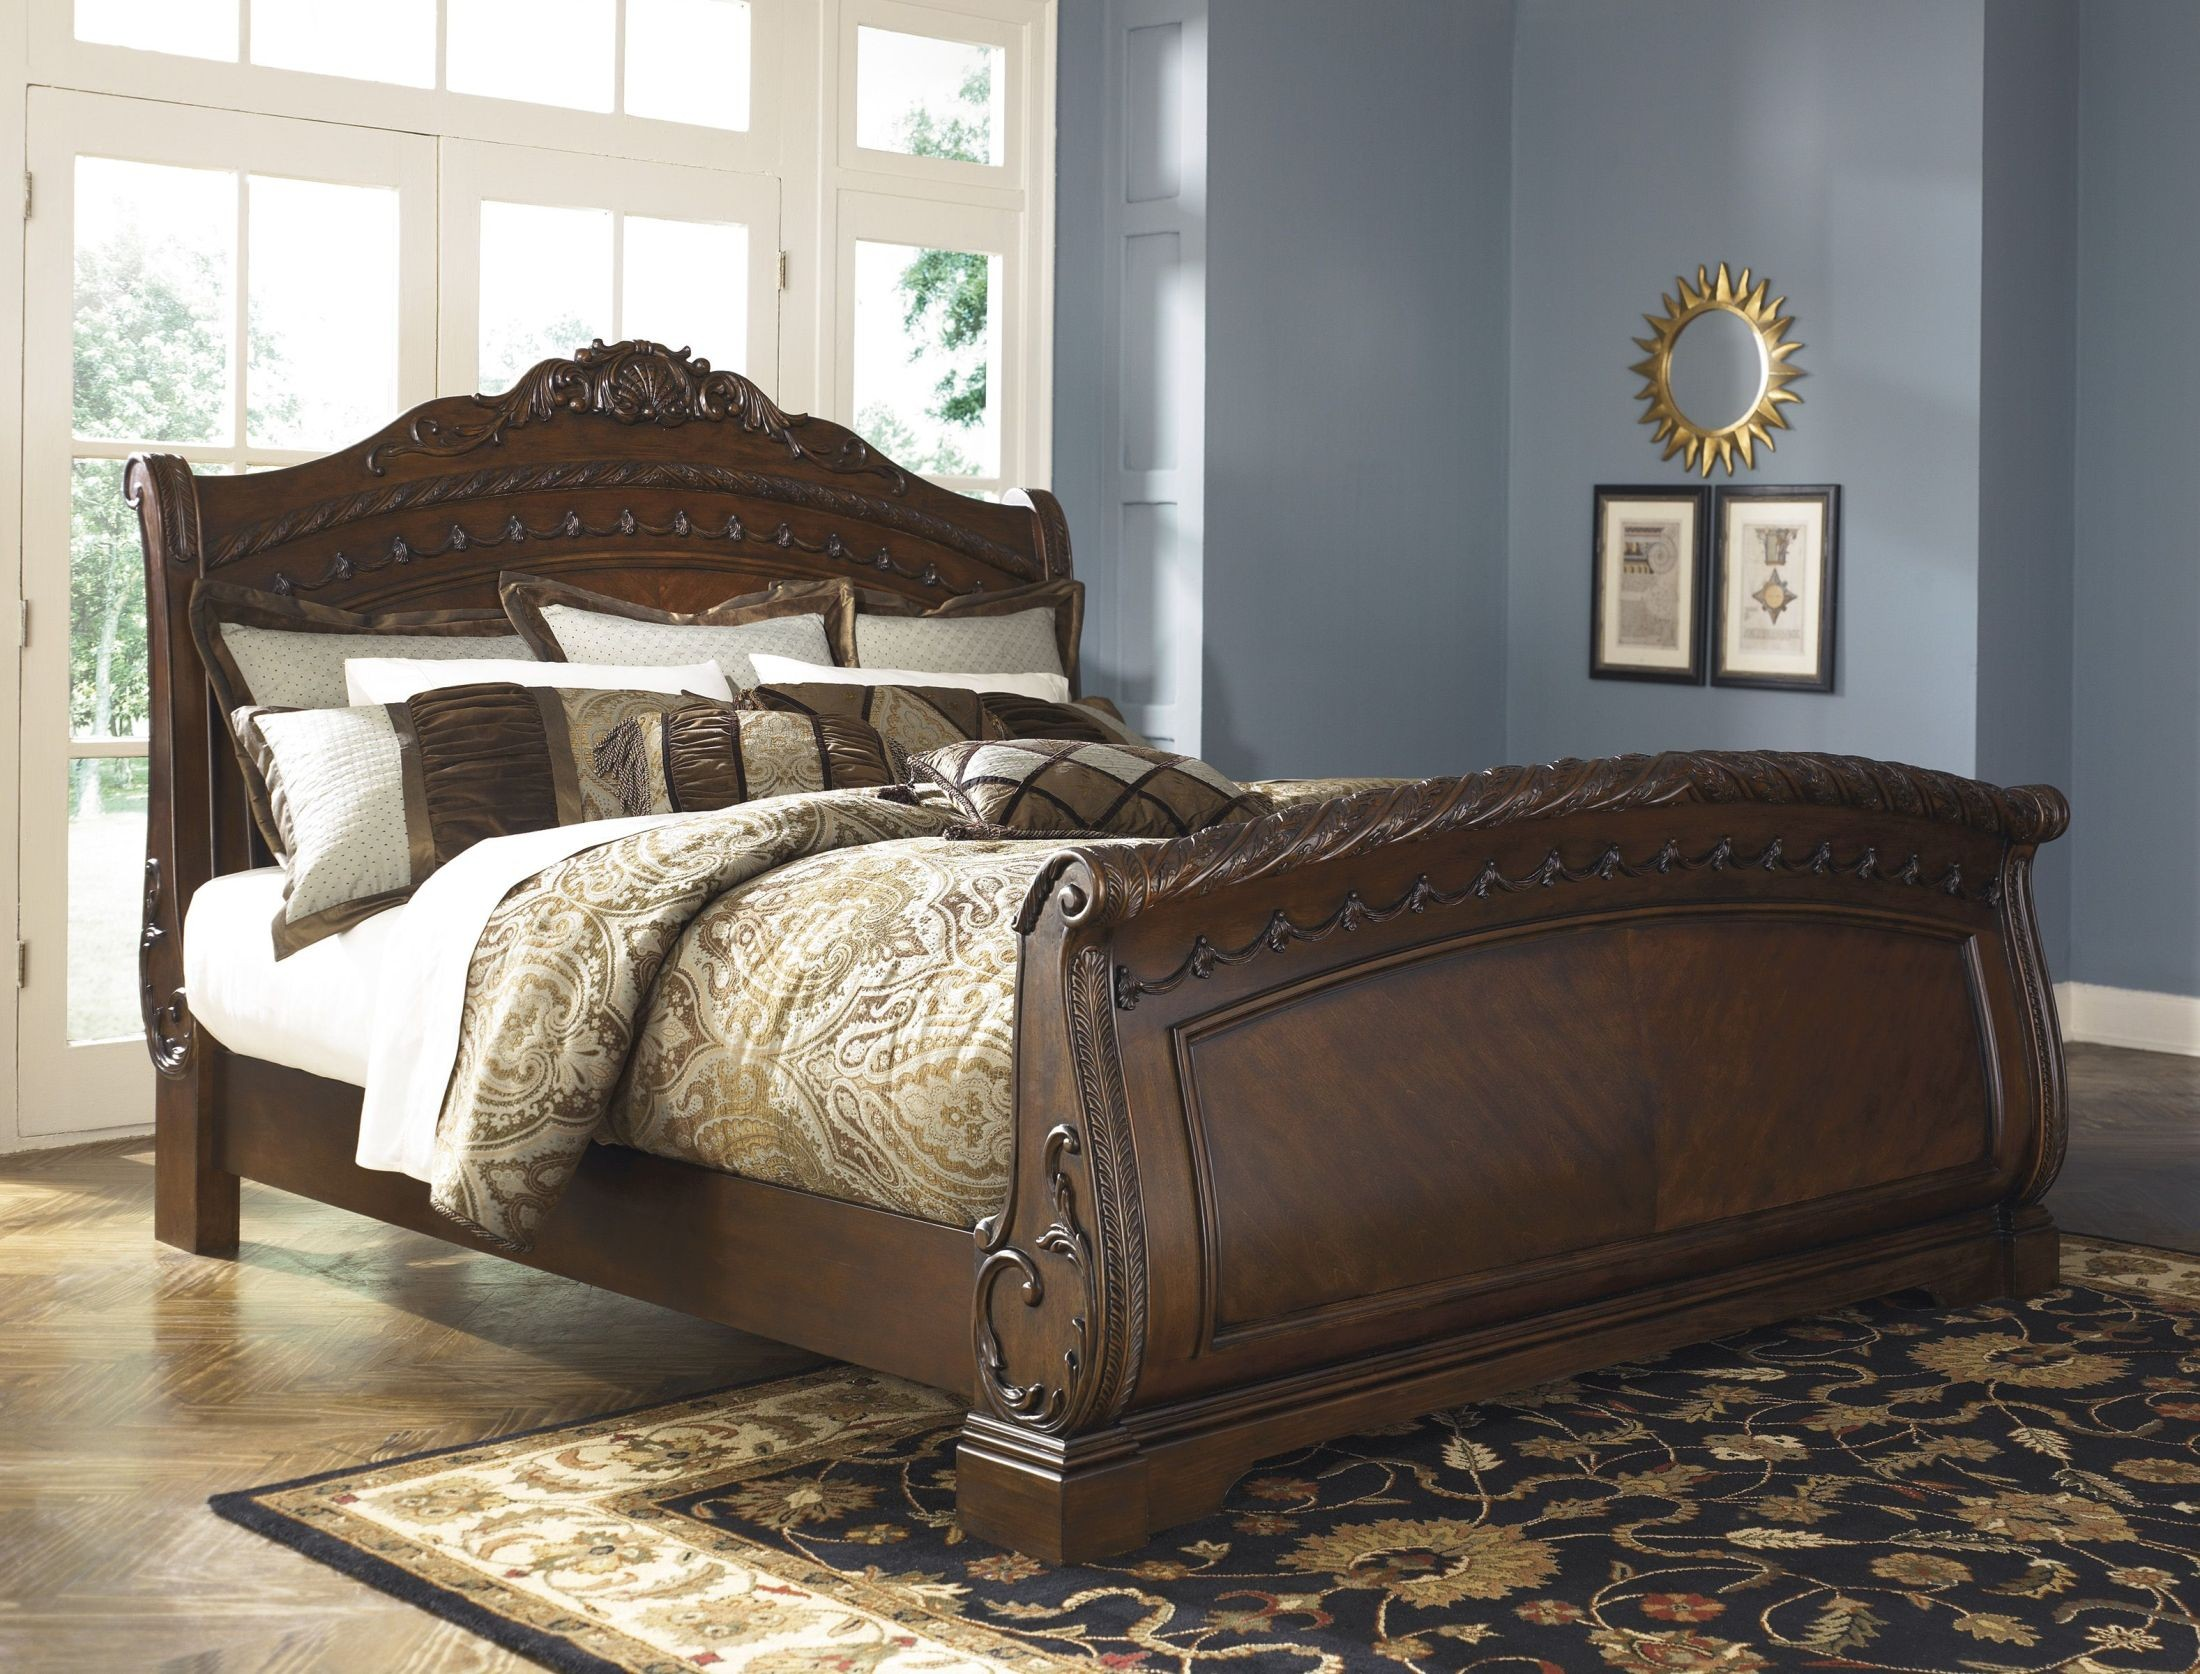 North Shore Queen Sleigh Bed550436. North Shore Queen Sleigh Bed from Ashley  B553 77 74 75    Coleman